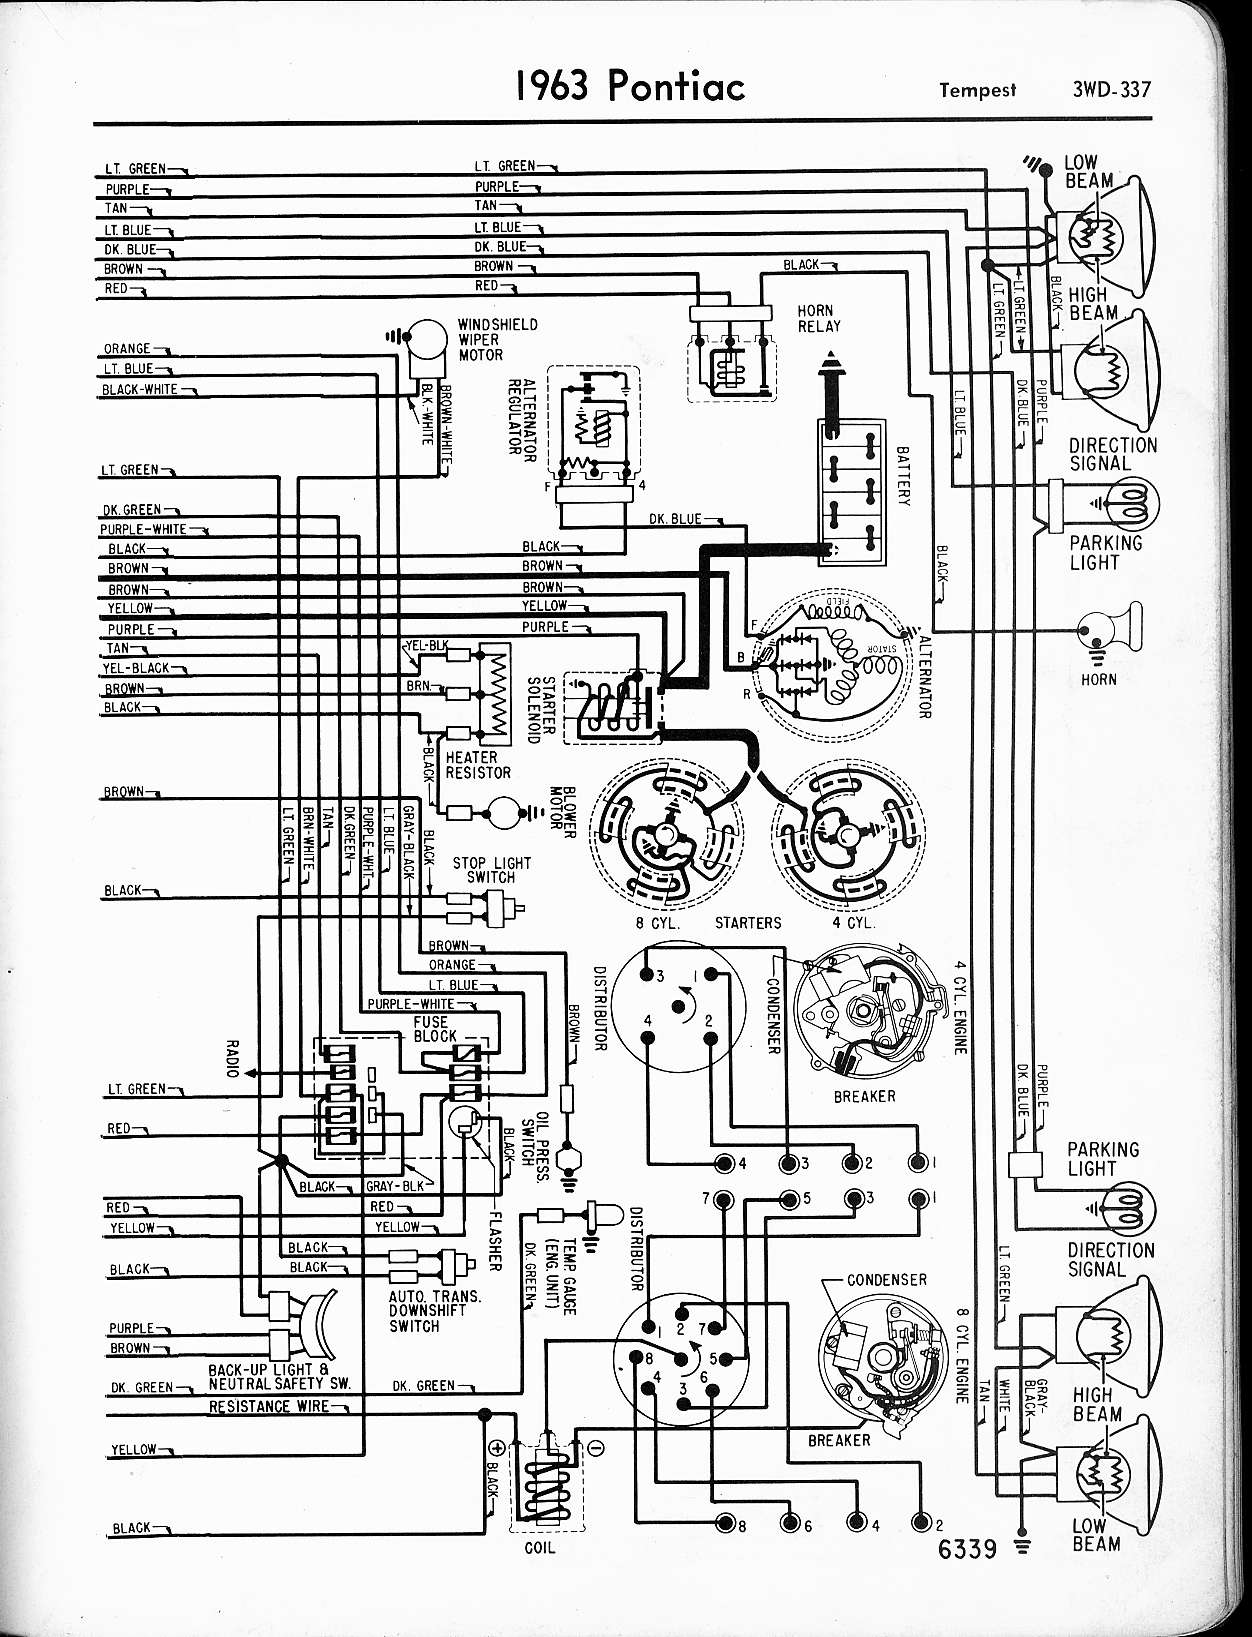 1965 chevy wiring diagram wiring diagram Impala SS 1966 1965 impala ignition wiring diagram online wiring diagram1968 chevy impala turn signal wiring diagram wiring schematic